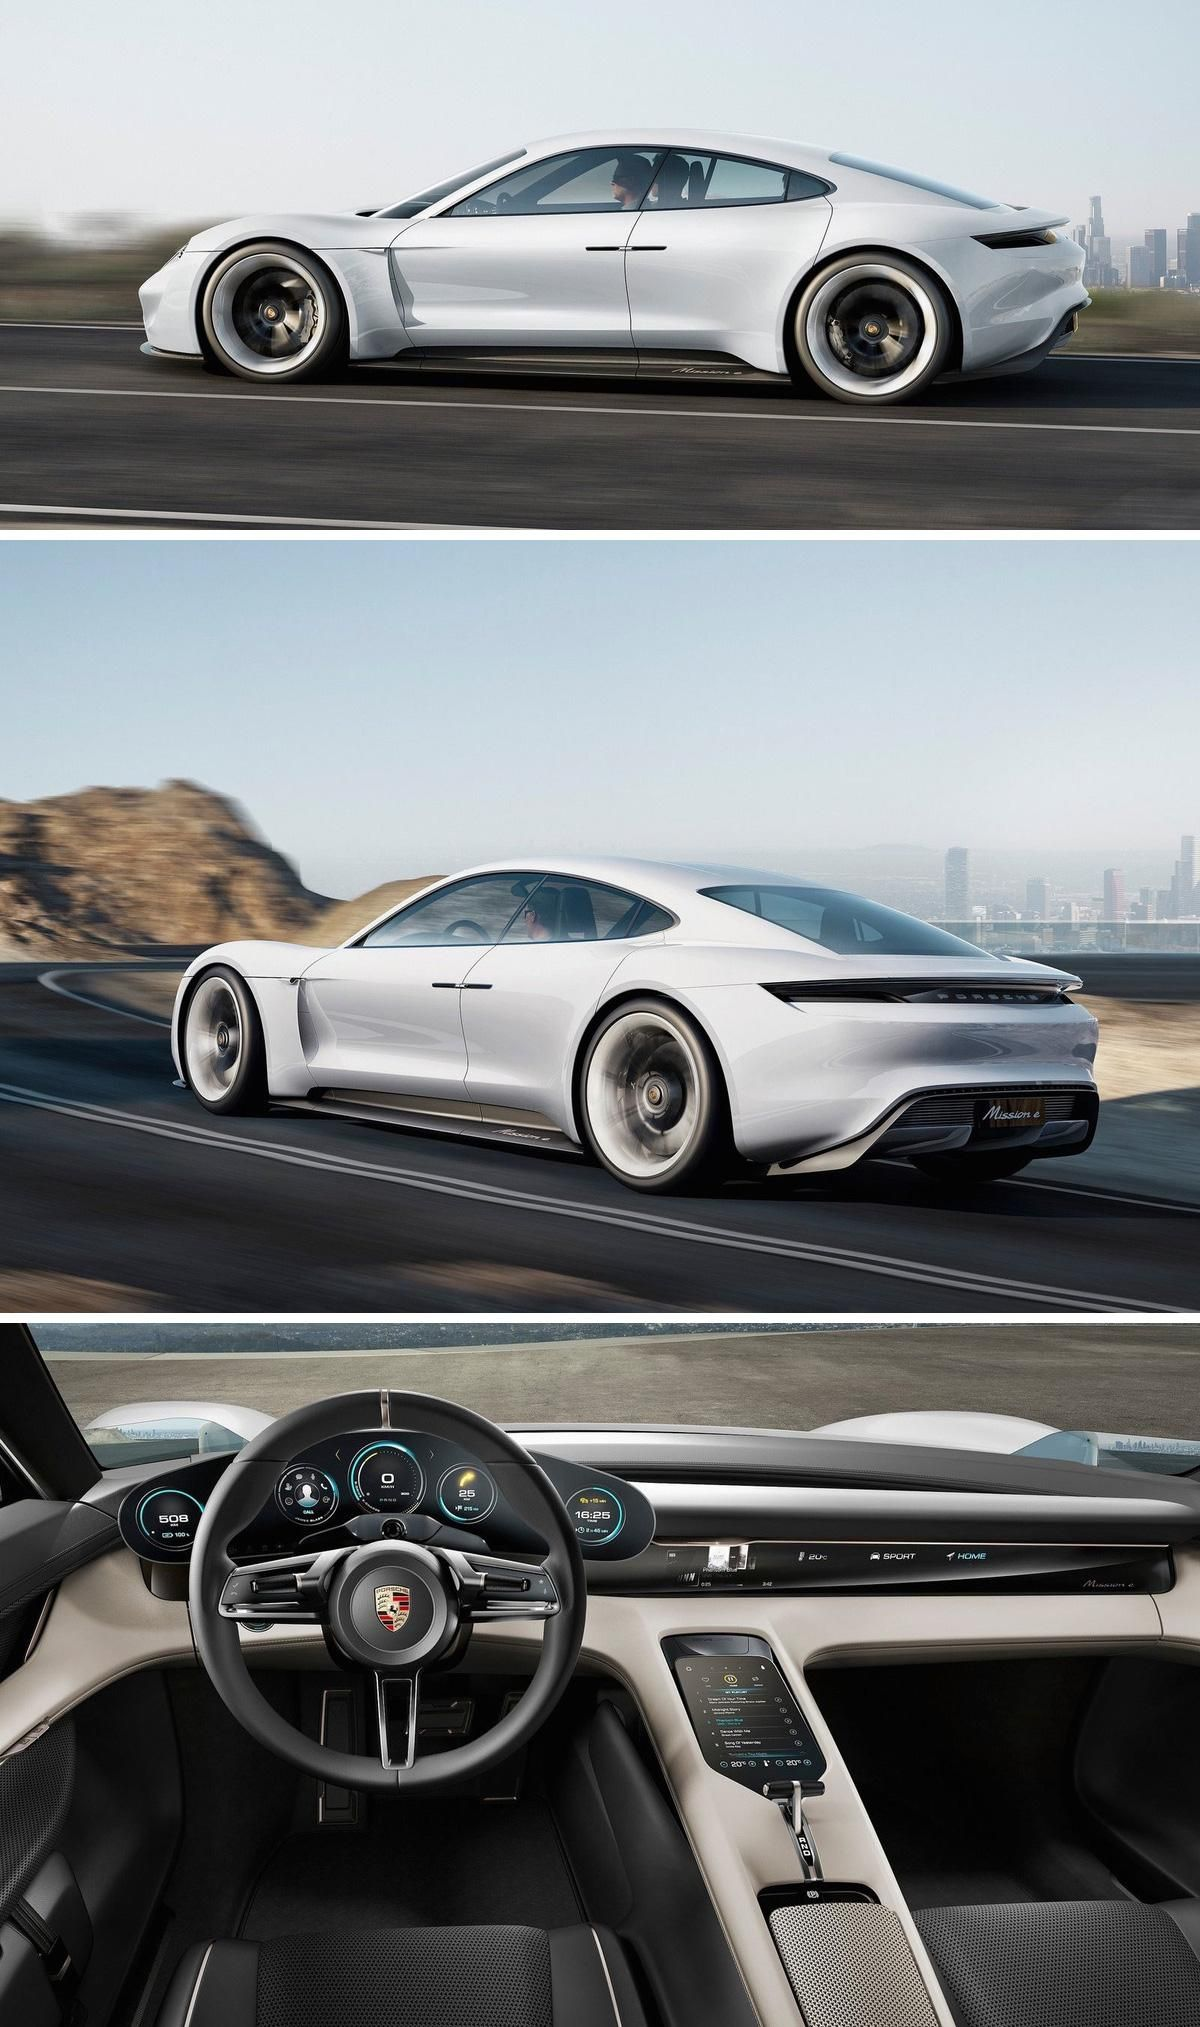 The Porsche Mission E promises a 310-mile driving range, 600 horsepower and most unbelievably, a charging time of only 15 minutes to charge the battery 80%